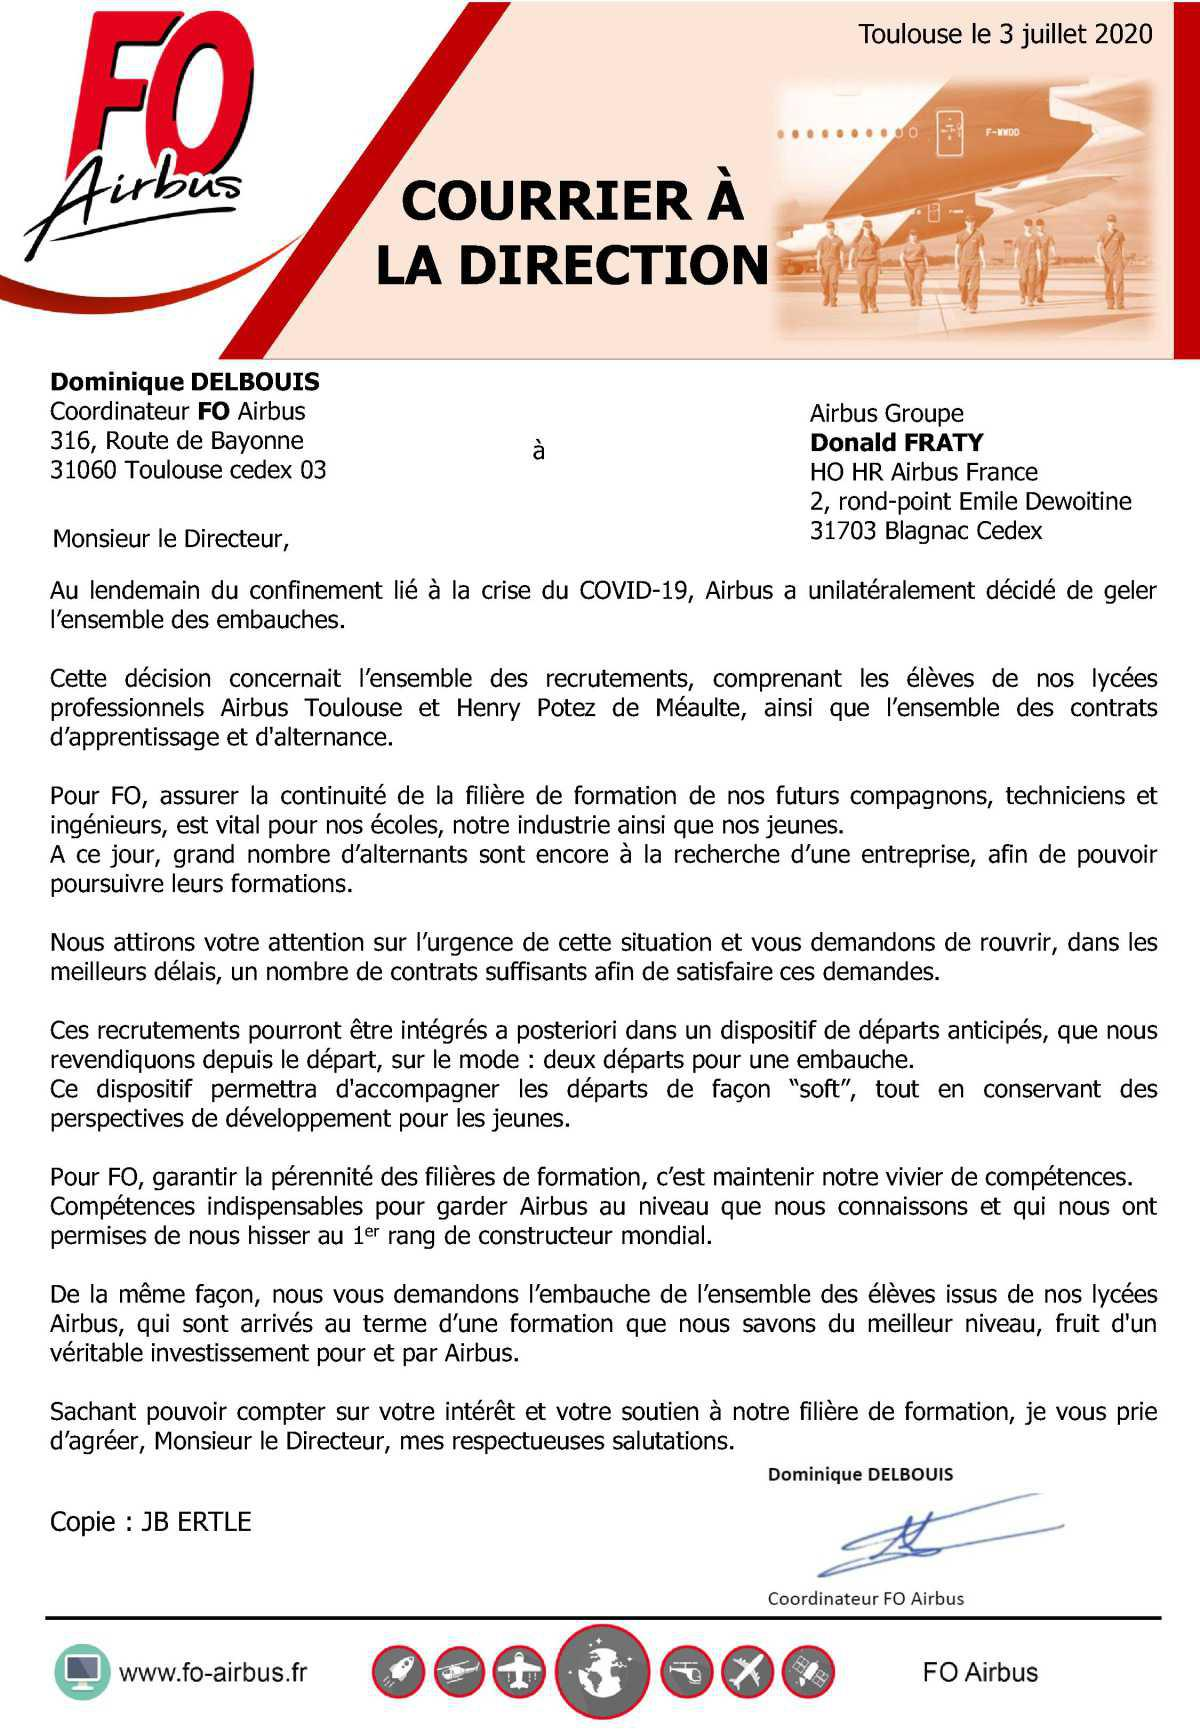 Courrier à la Direction